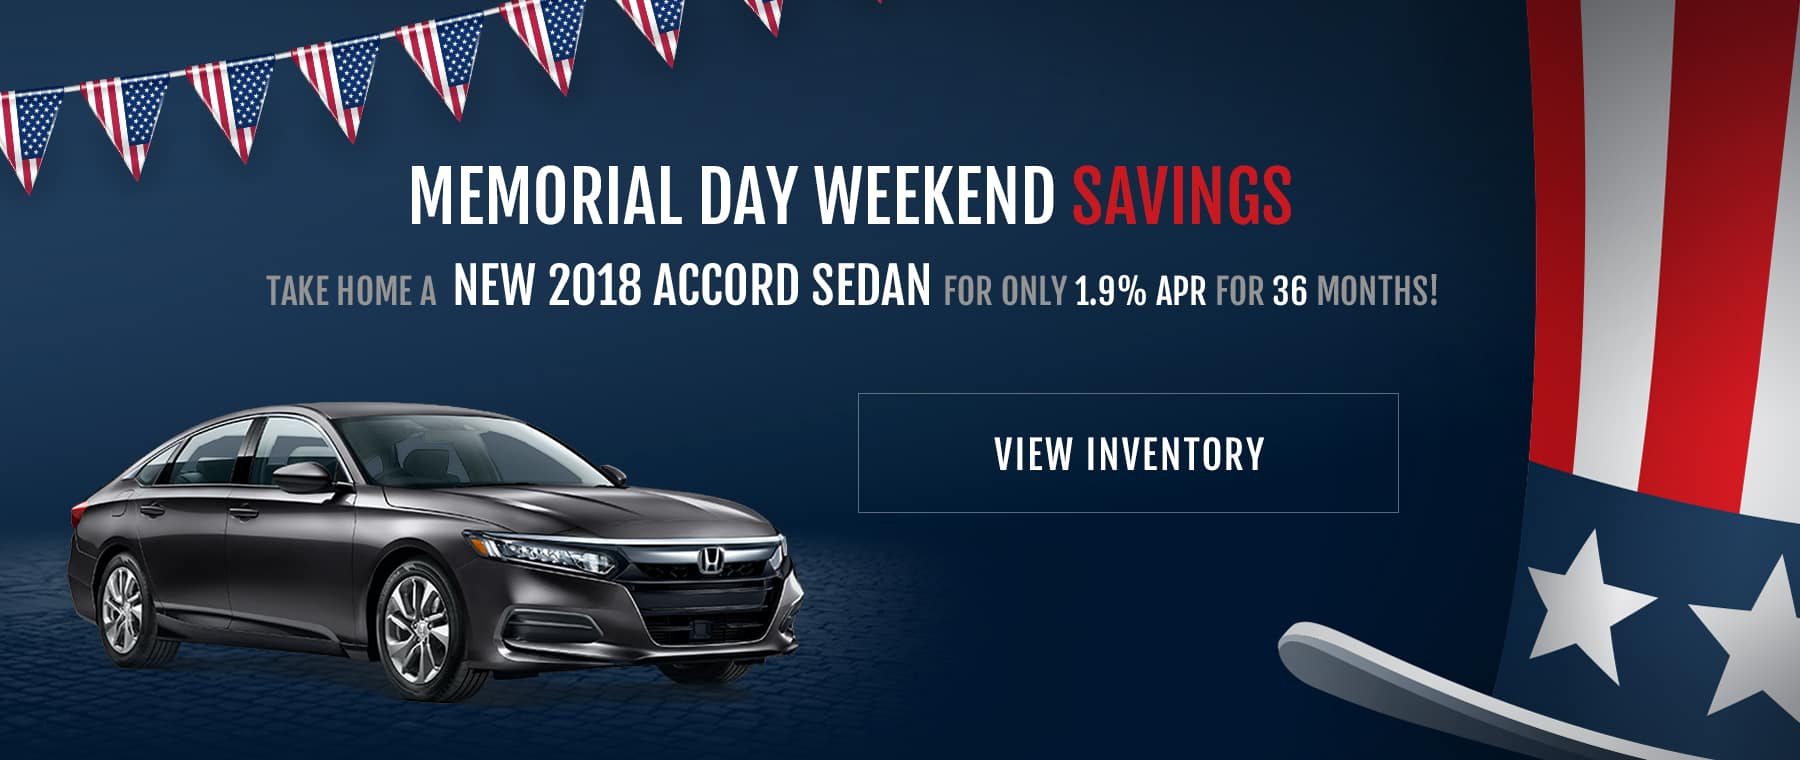 Classic Honda of Midland Memorial Day Offer Accord